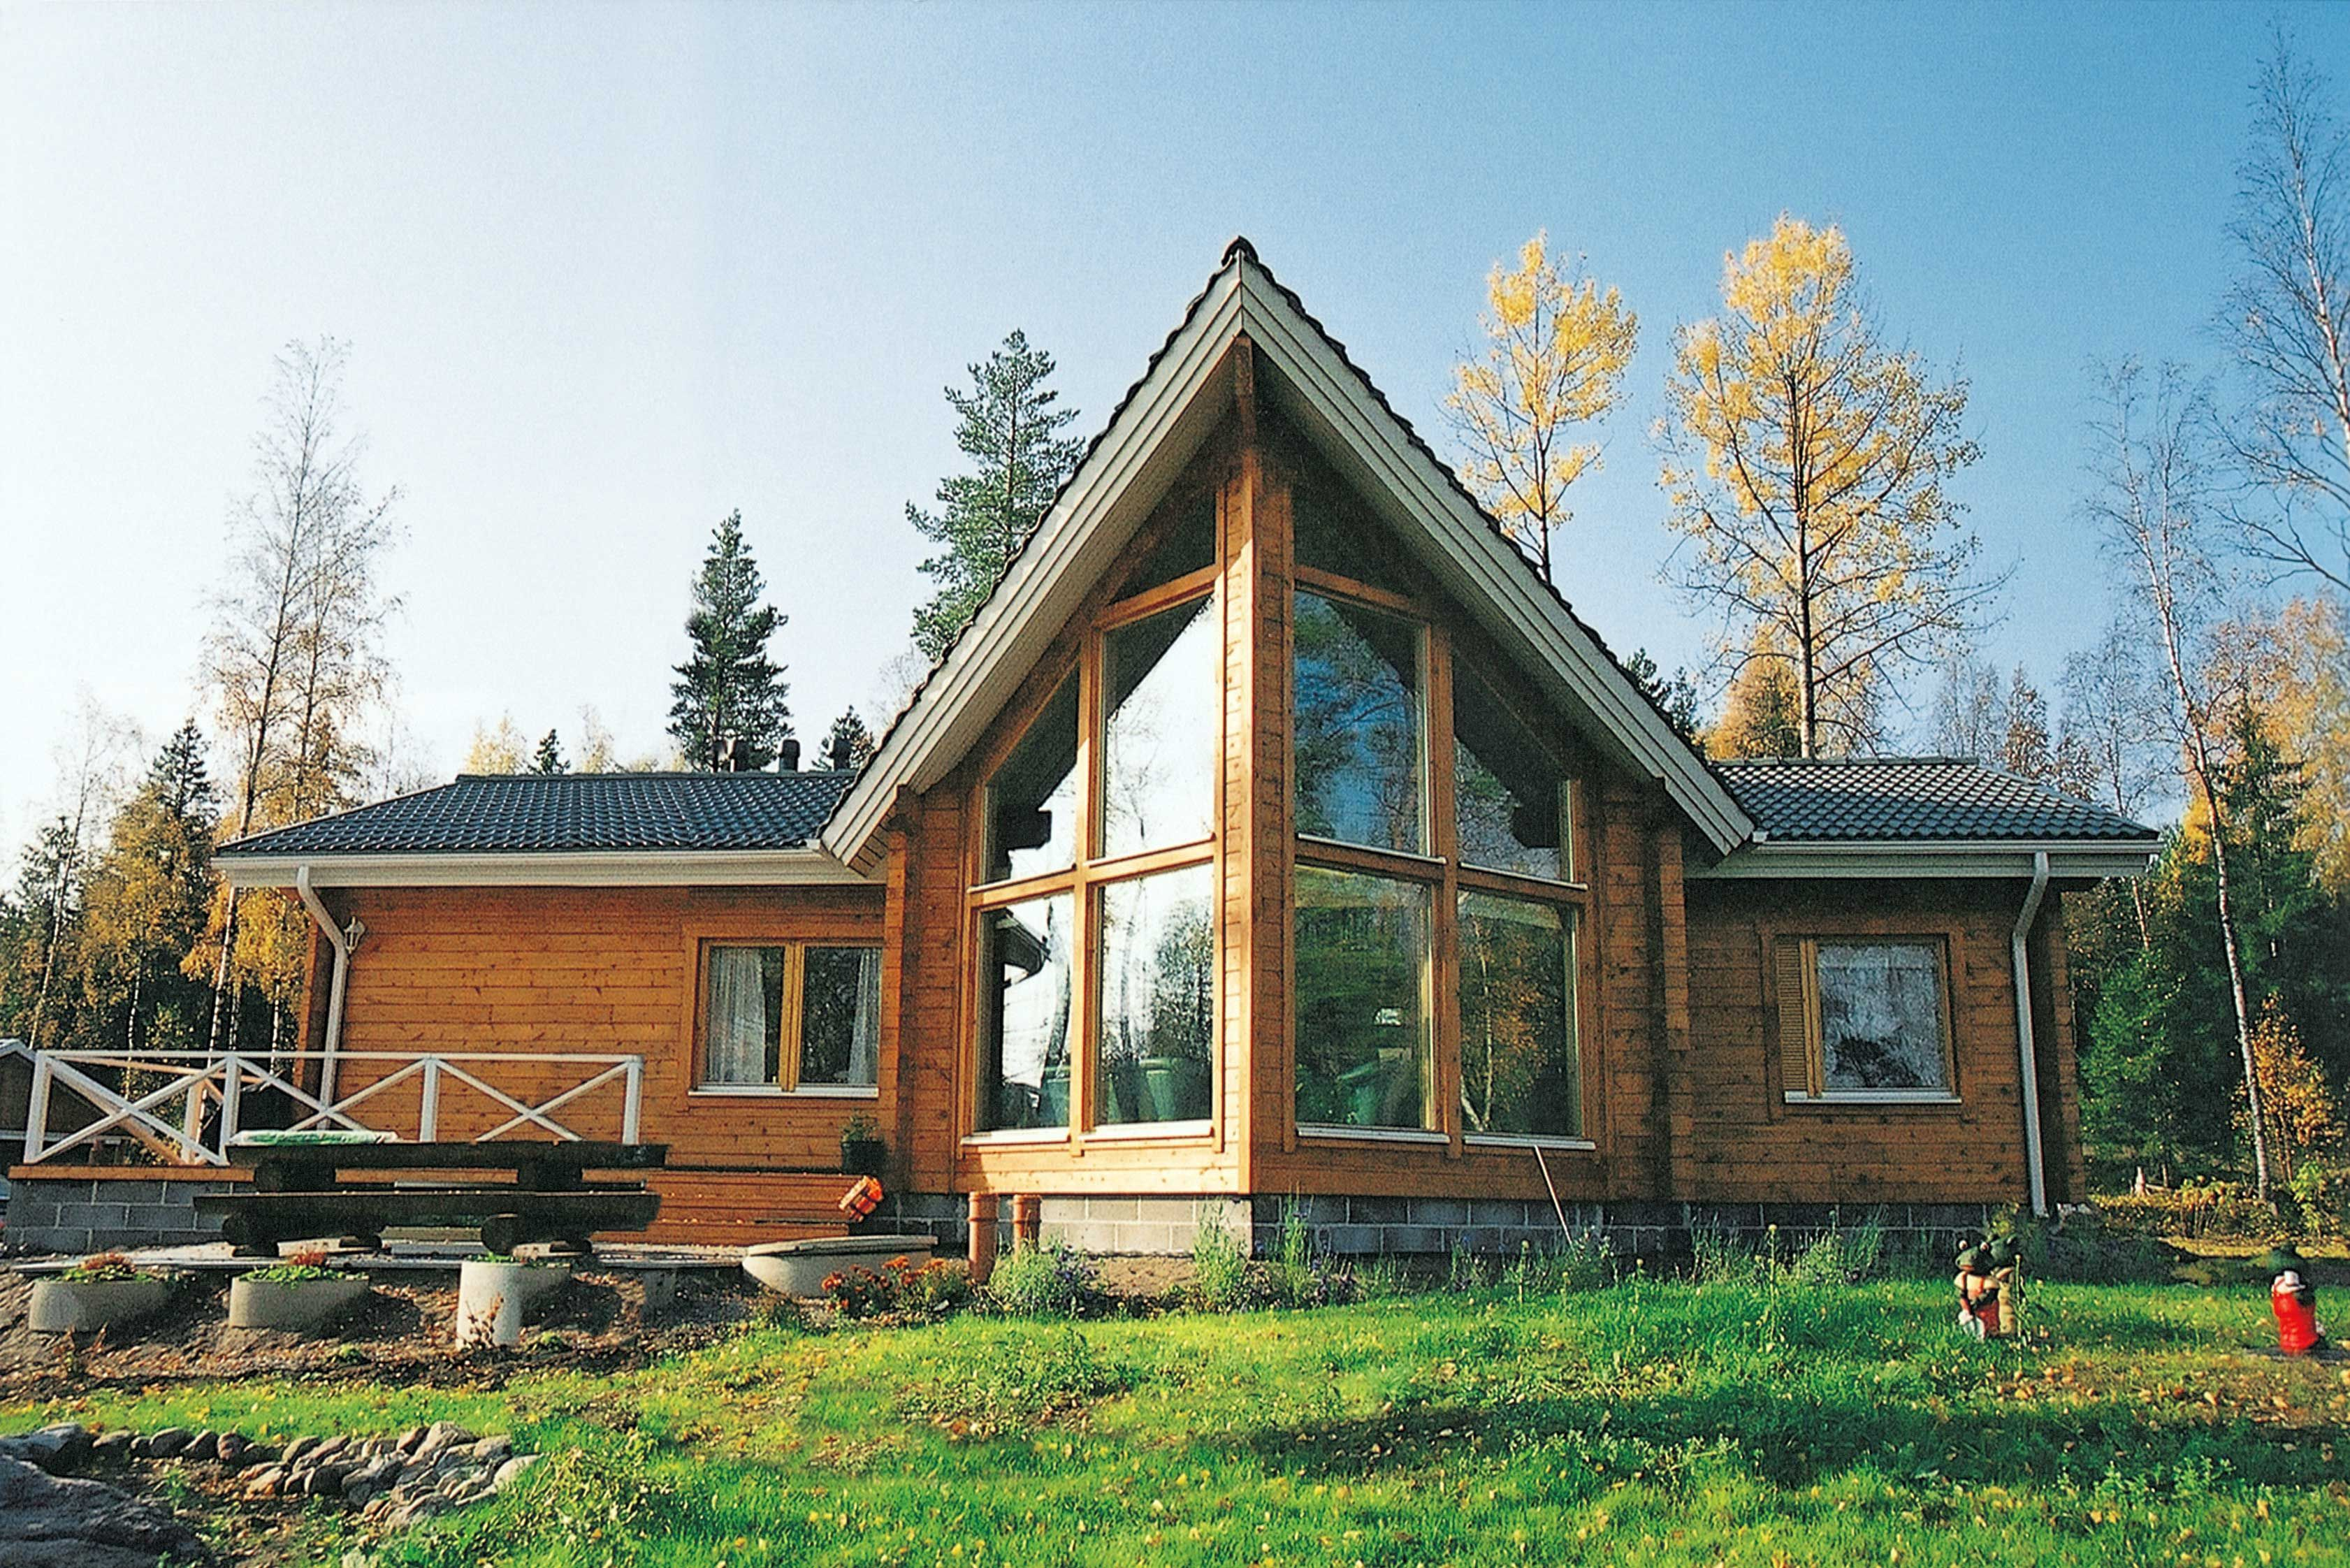 Affordable Prefab Homes Small Green Houses Cabins Kits Cabin Prices Impressive House Plans For Home Co Affordable Prefab Homes A Frame House Plans Prefab Homes